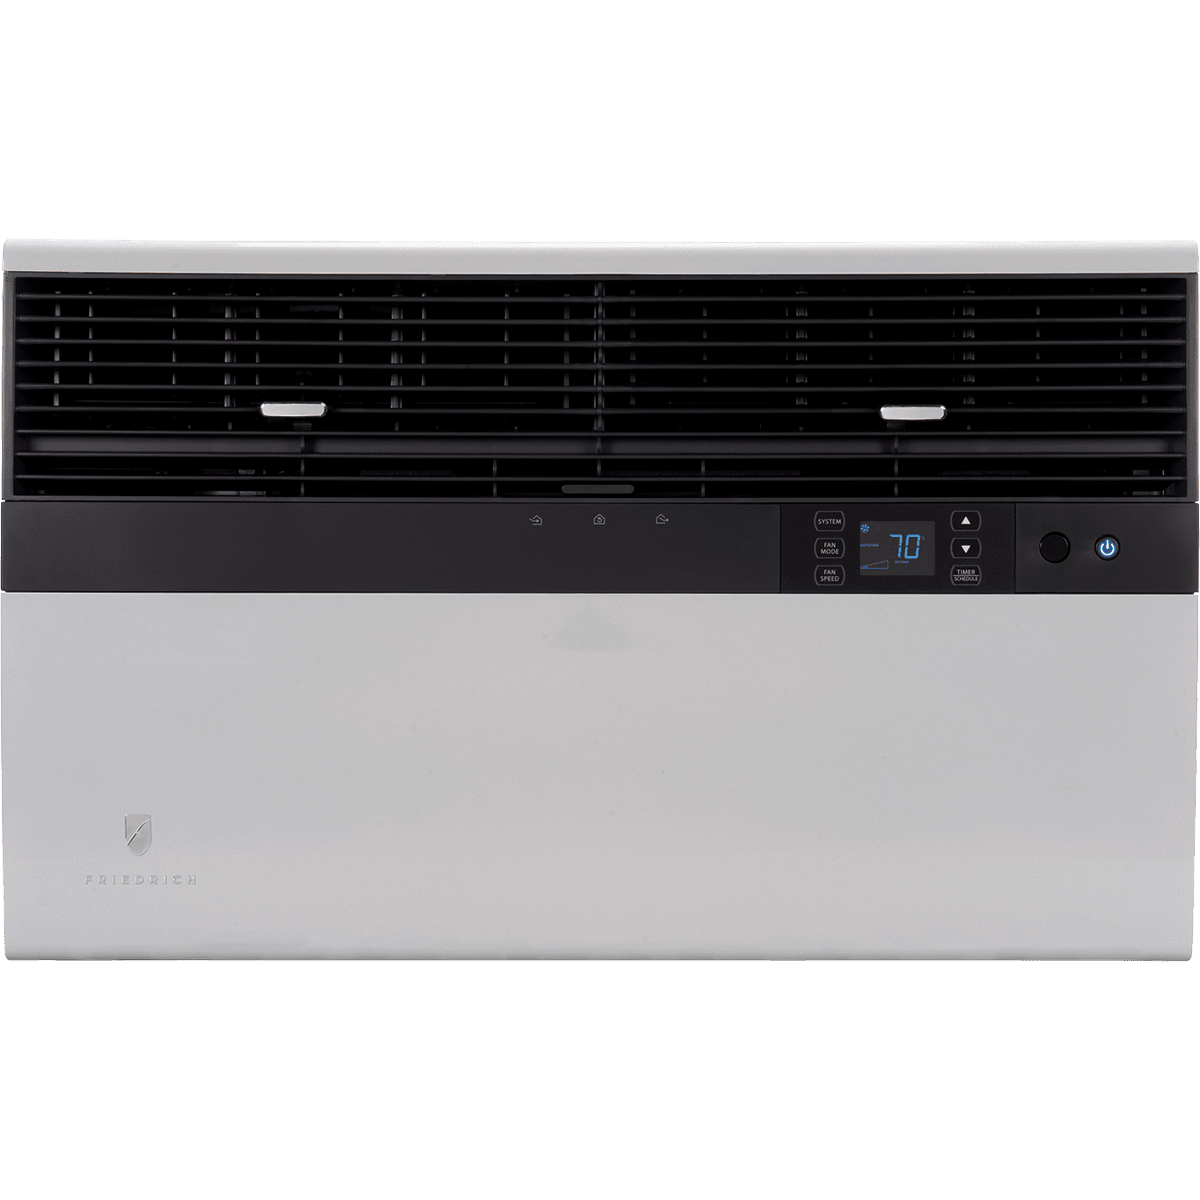 Friedrich YM18N34C 18 000 BTU Window AC w/ Heat Pump Sylvane #3D6082